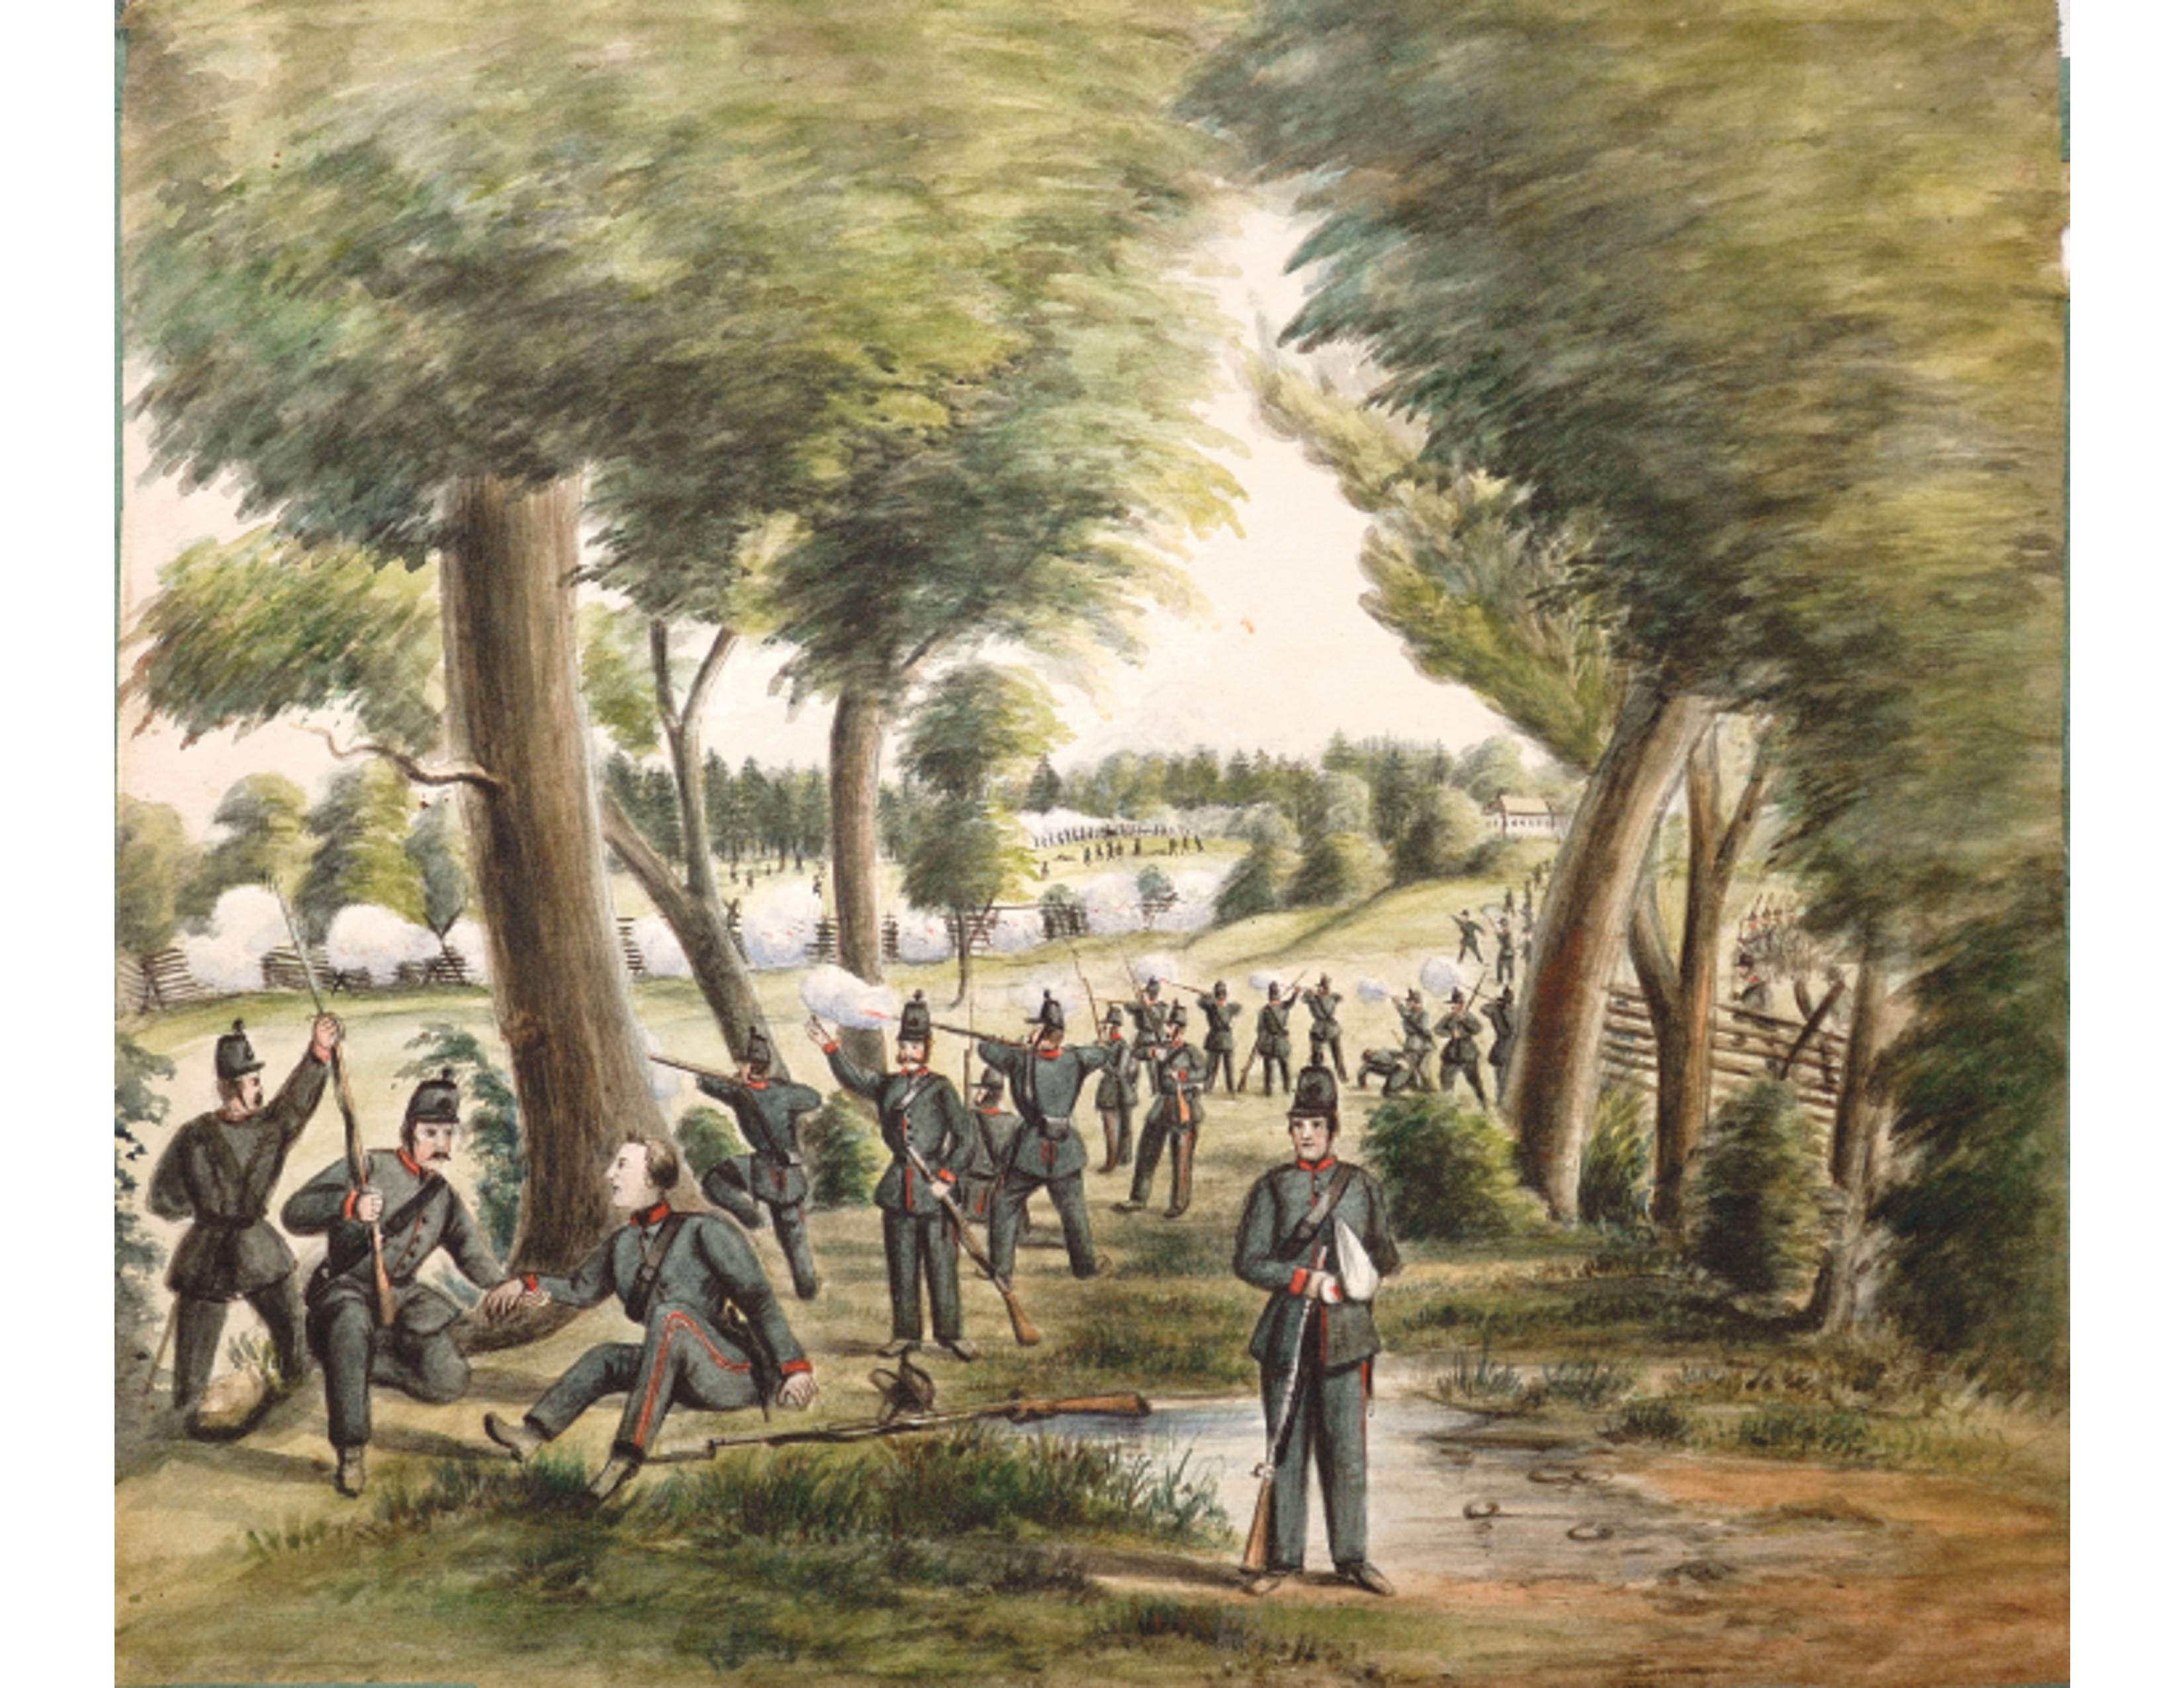 The Queen's Own Rifles in a watercolour painting done during the time of the Ridgeway Battle. It will be included in a new book called First Hand Accounts of the 1866 Fenian Raid and Battle of Ridgeway featured in a six-month Canada 150 exhibit at the Canadian War Museum.